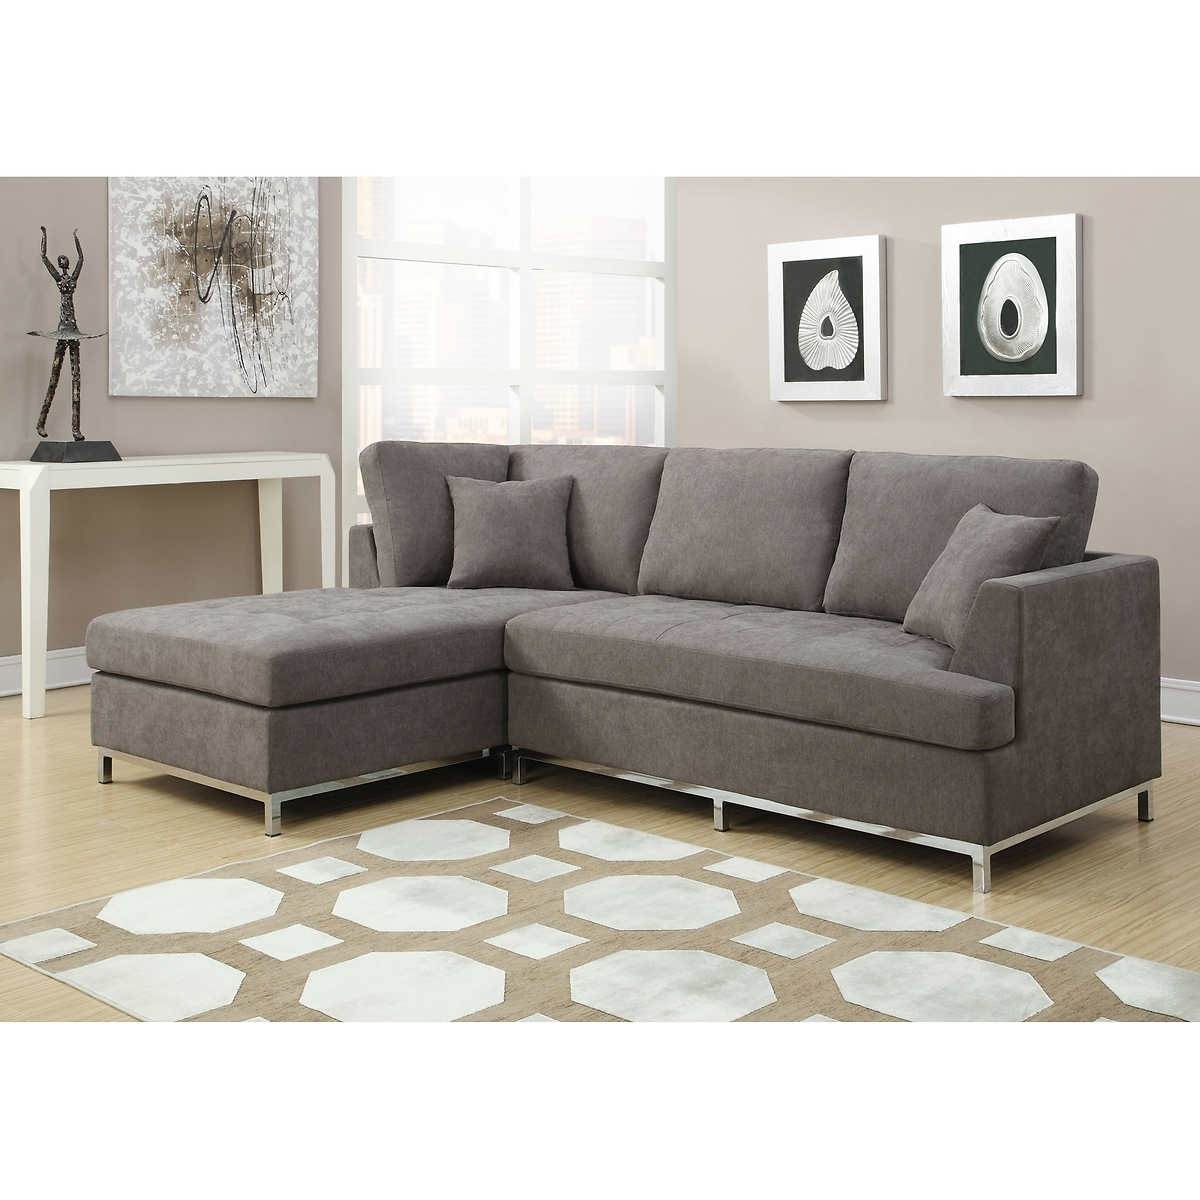 Tucson Sectional Sofas With Regard To Most Up To Date Gray Sectional Sofa Costco – Home Design Ideas And Pictures (View 12 of 15)